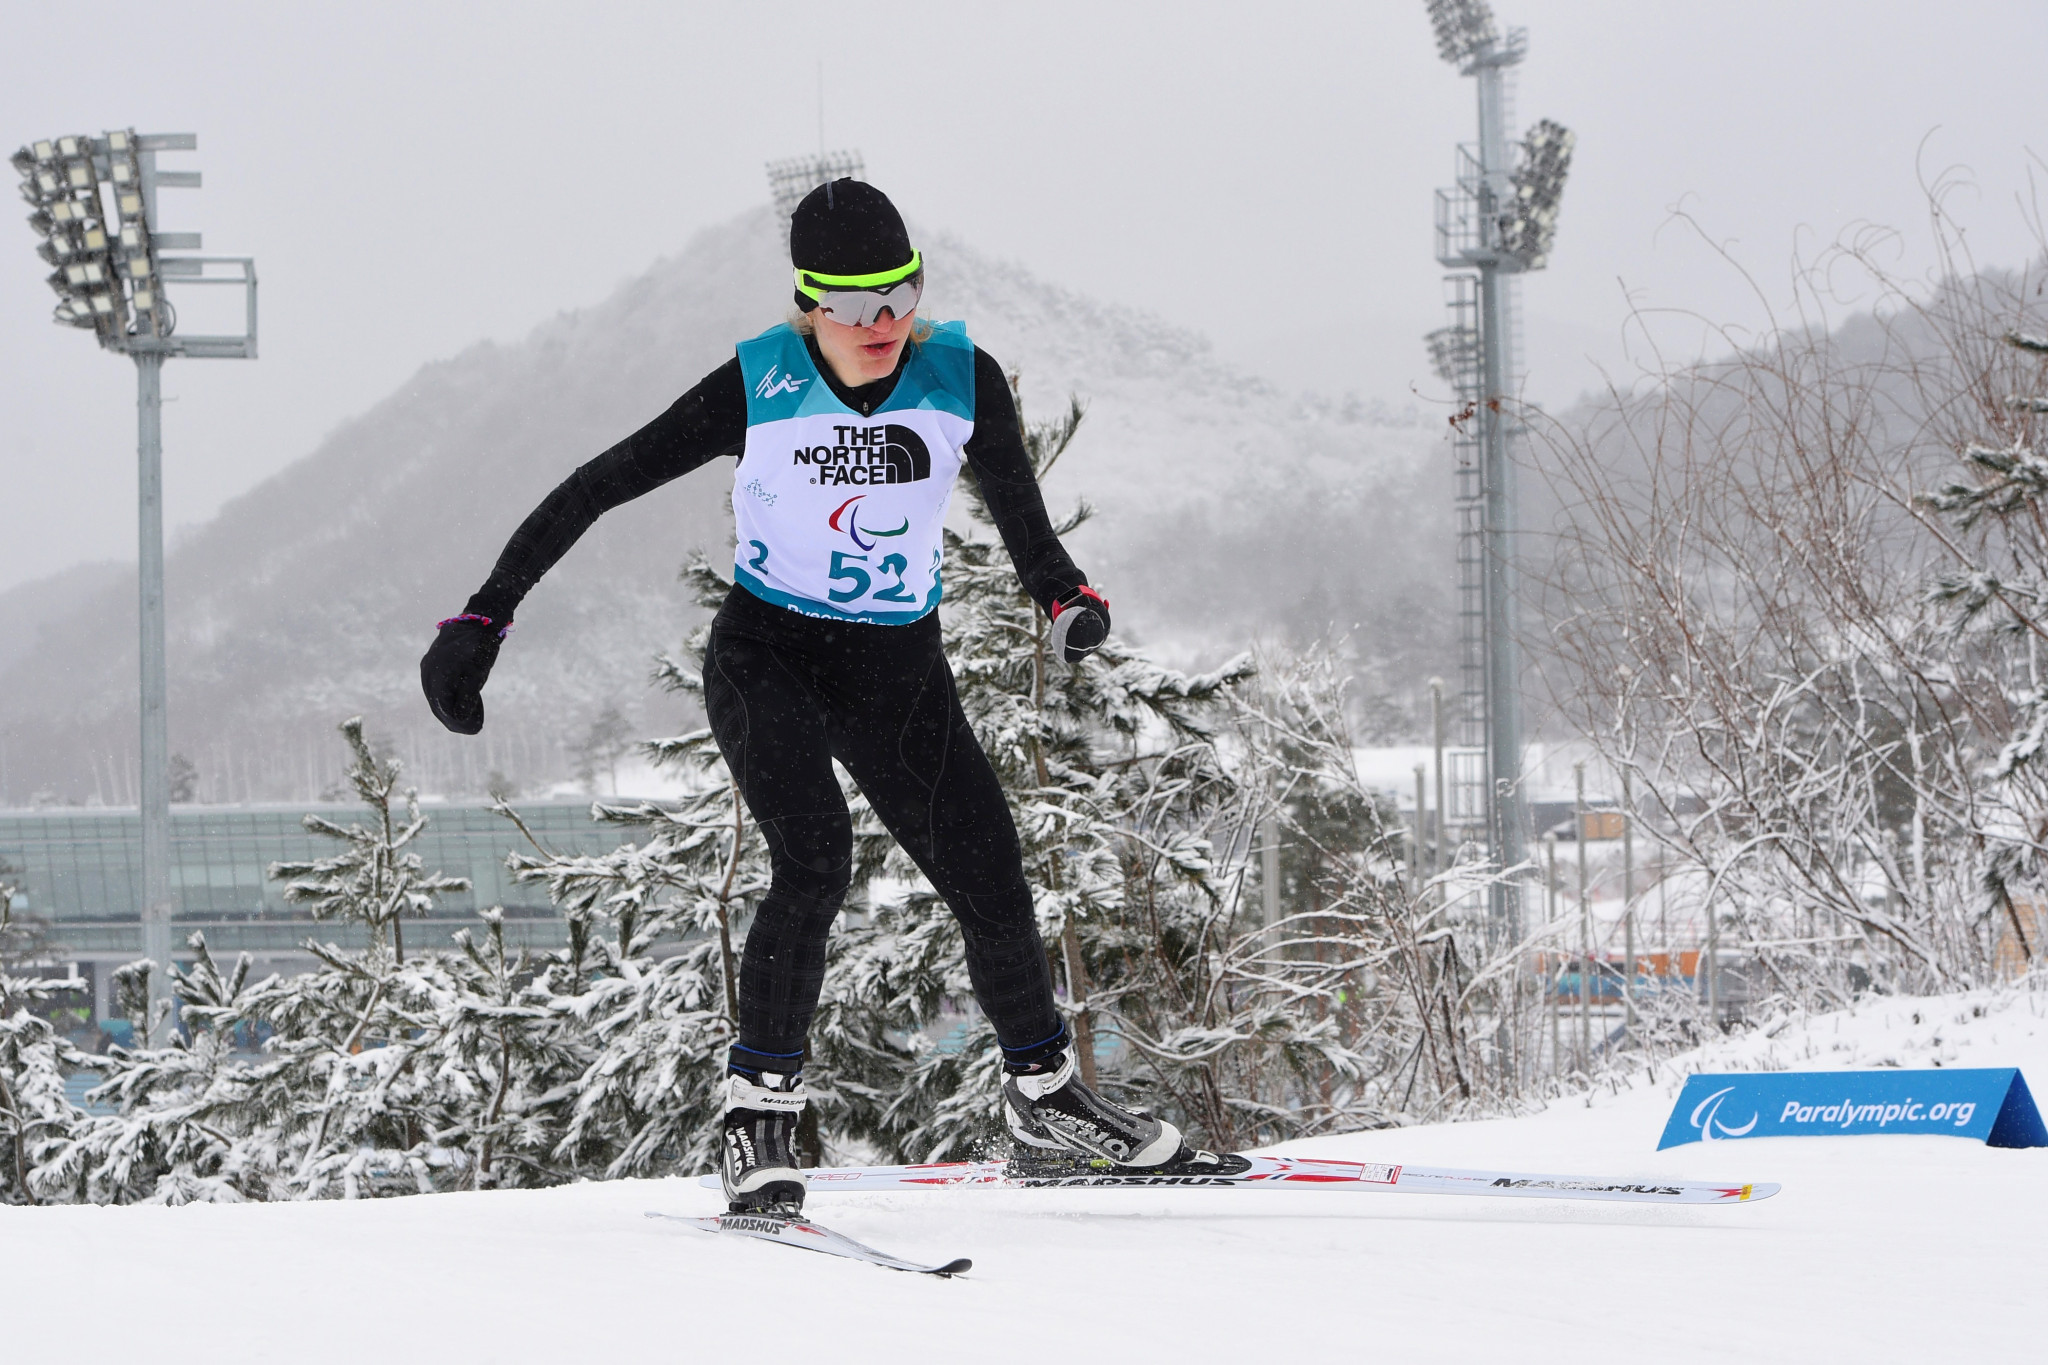 Russia shine again on day one of biathlon at World Para Nordic Skiing World Cup